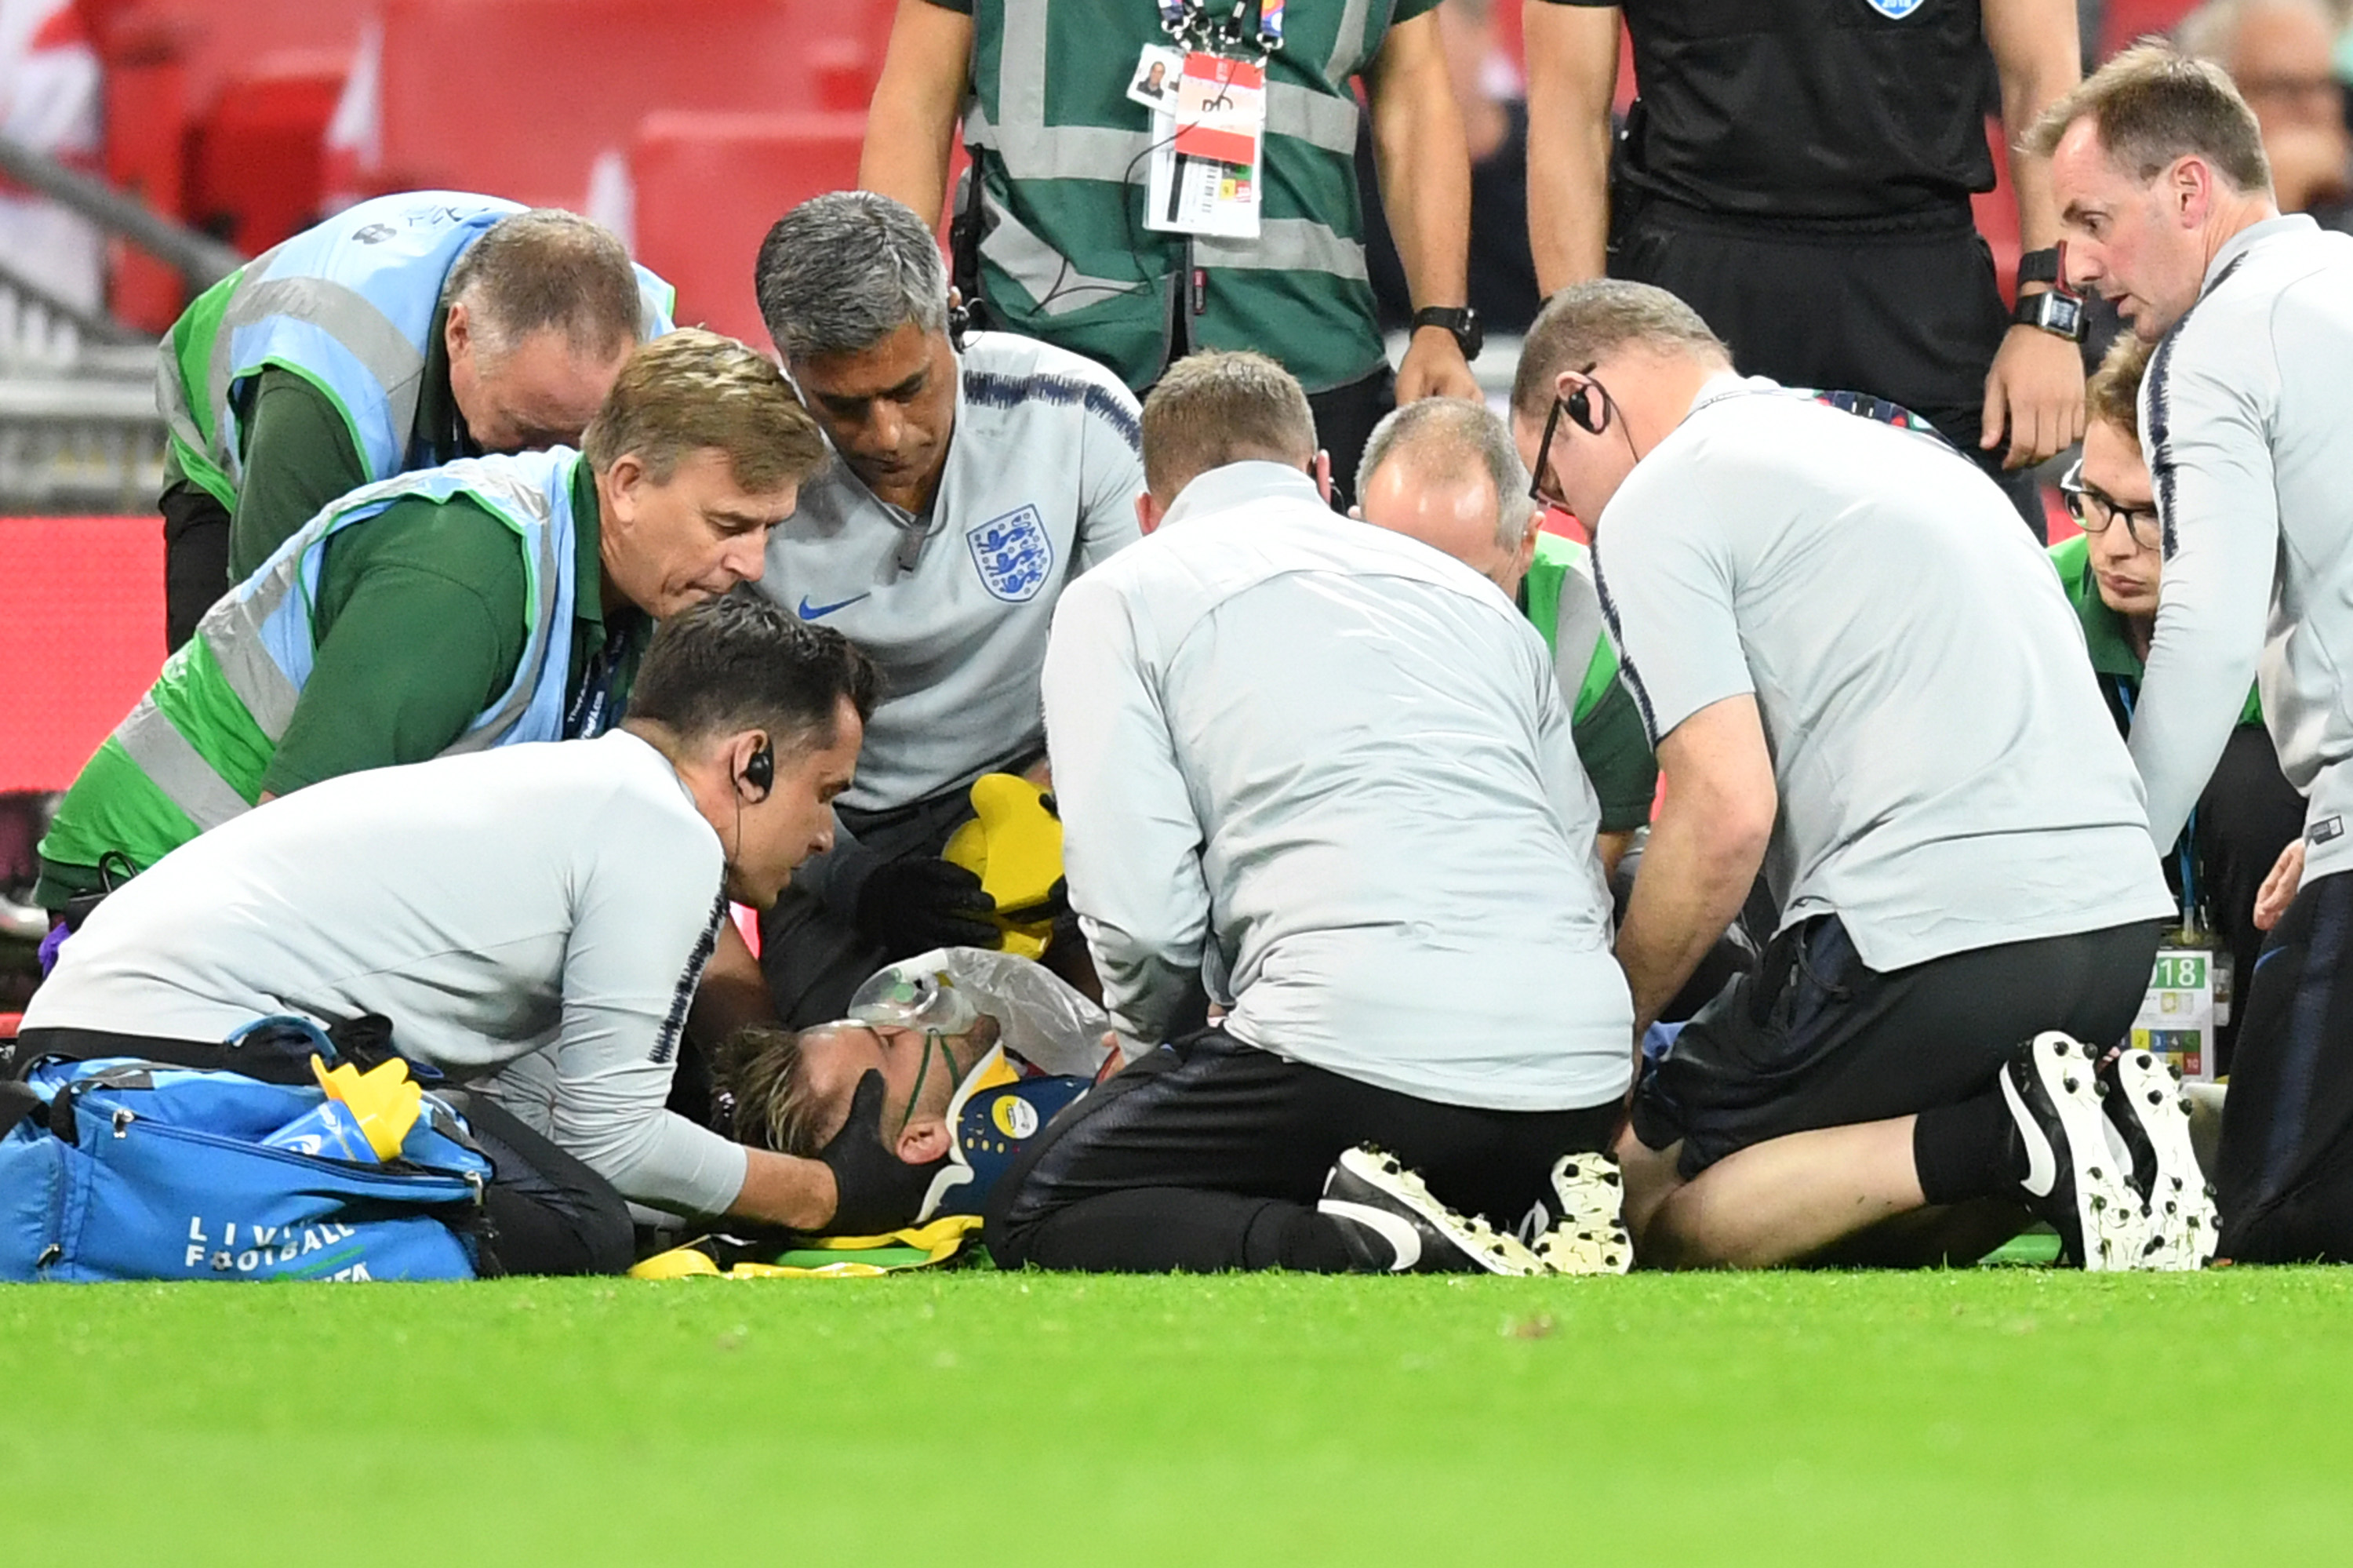 Doctor provides Luke Shaw's injury update after horror collision against Spain